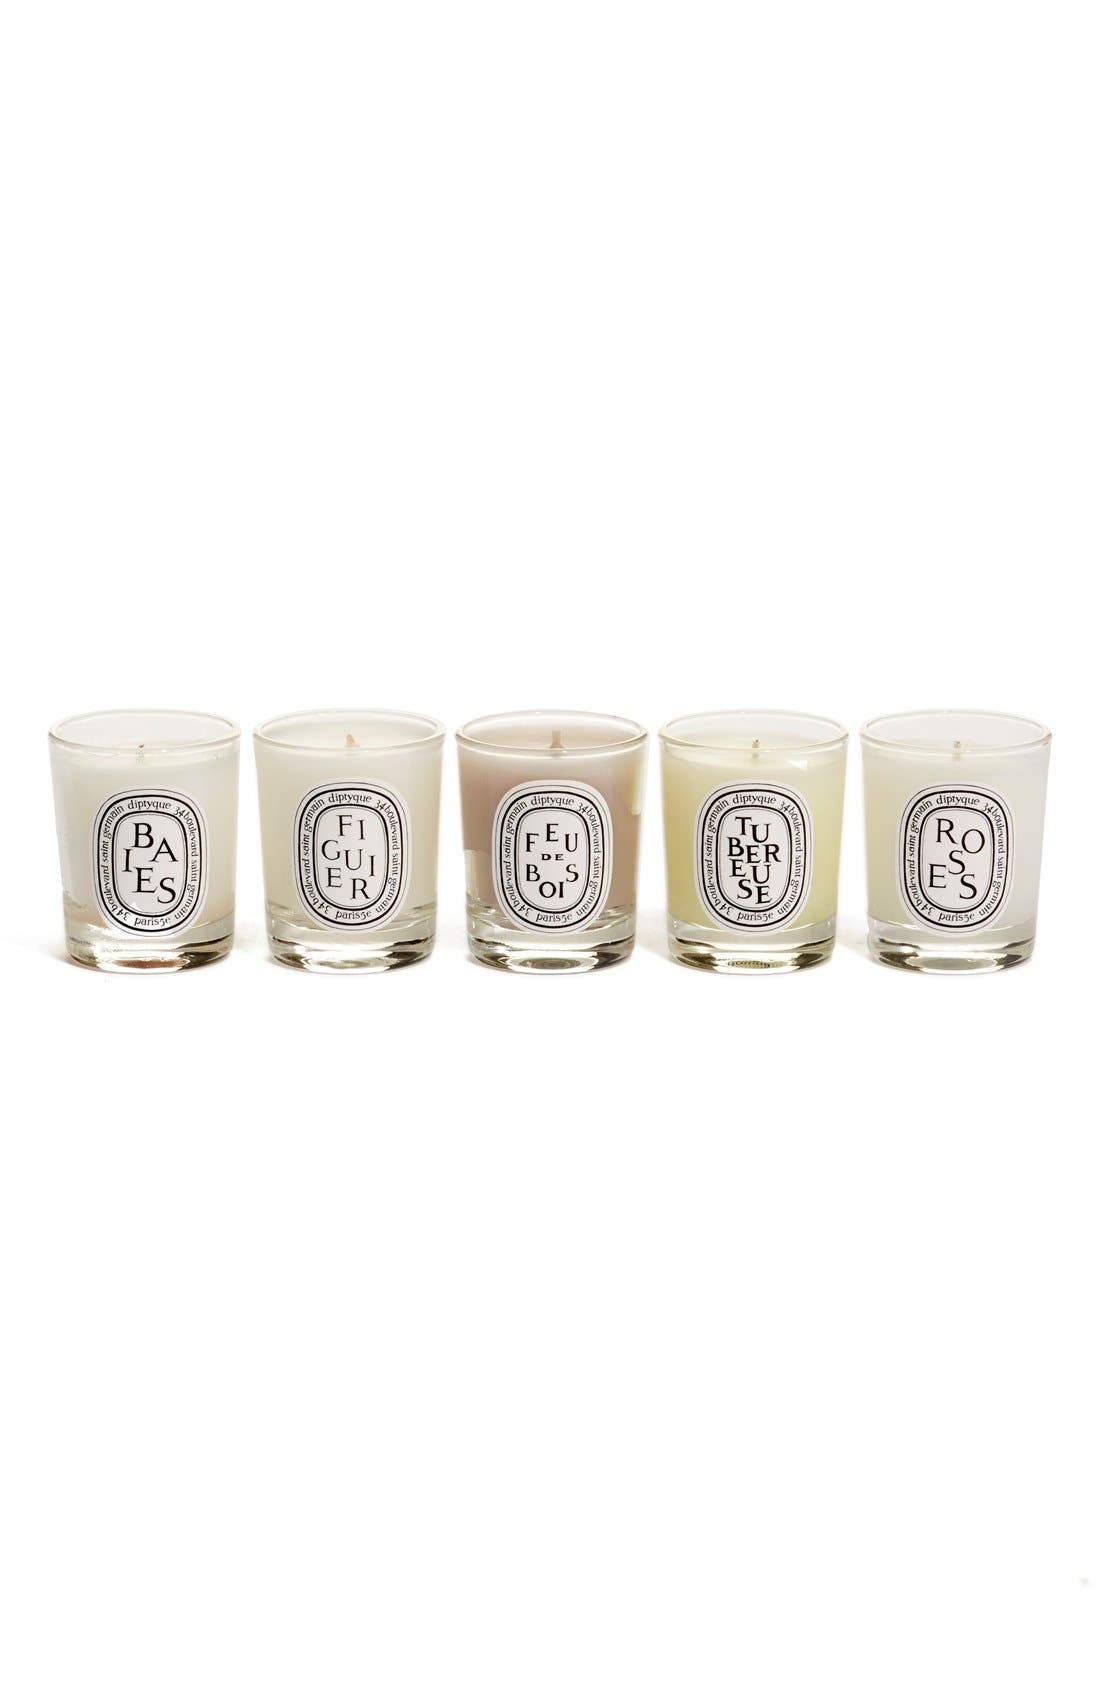 Scented Candle Set,                             Main thumbnail 1, color,                             000